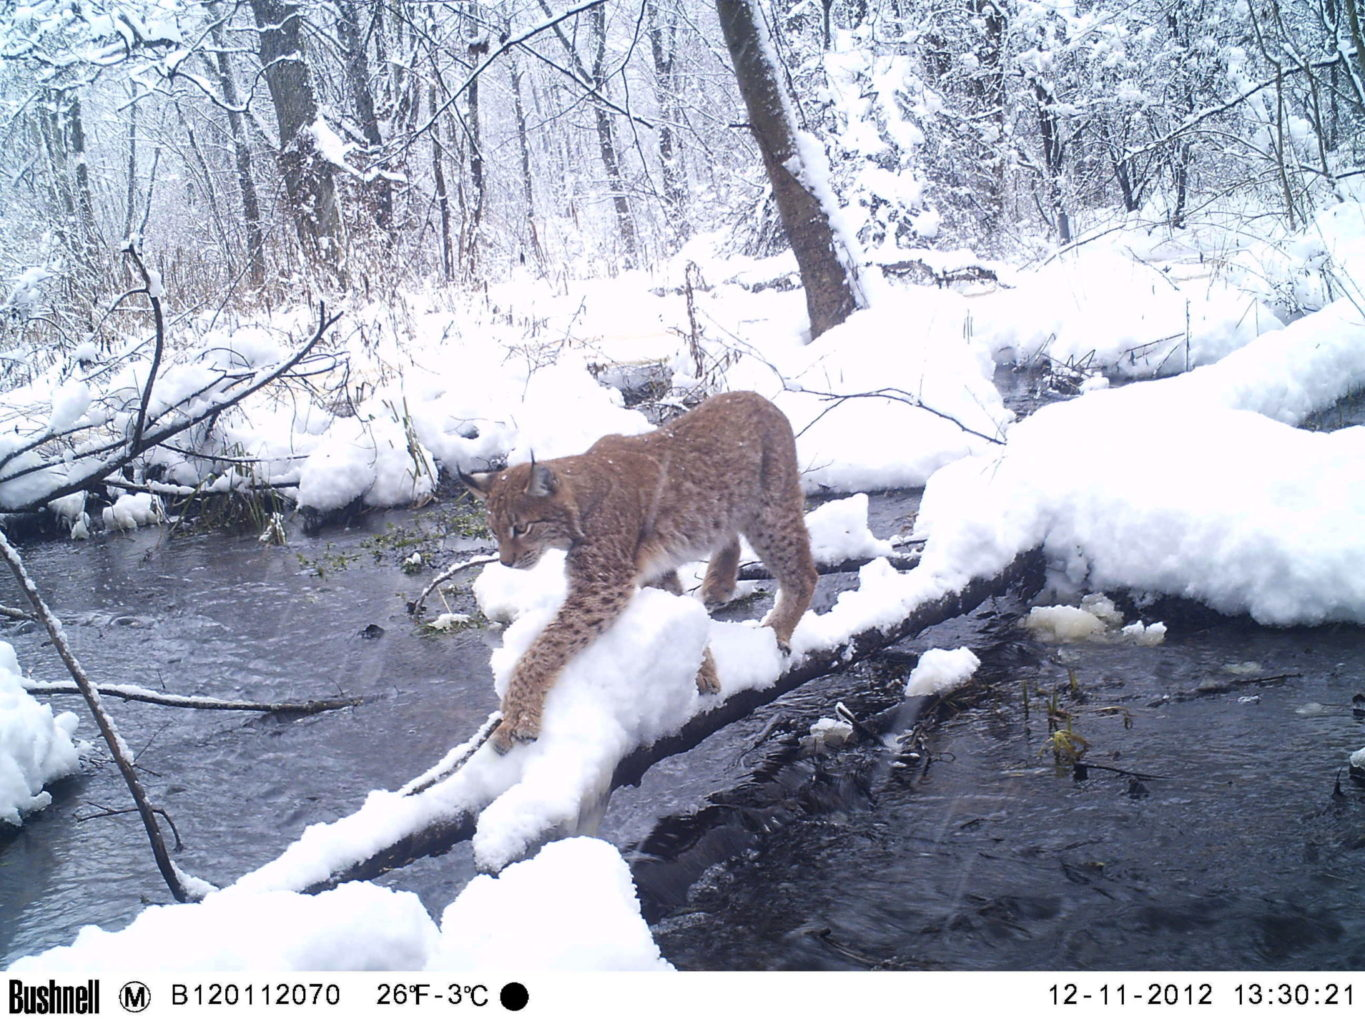 Cameras offer insights into Chernobyl's wildlife